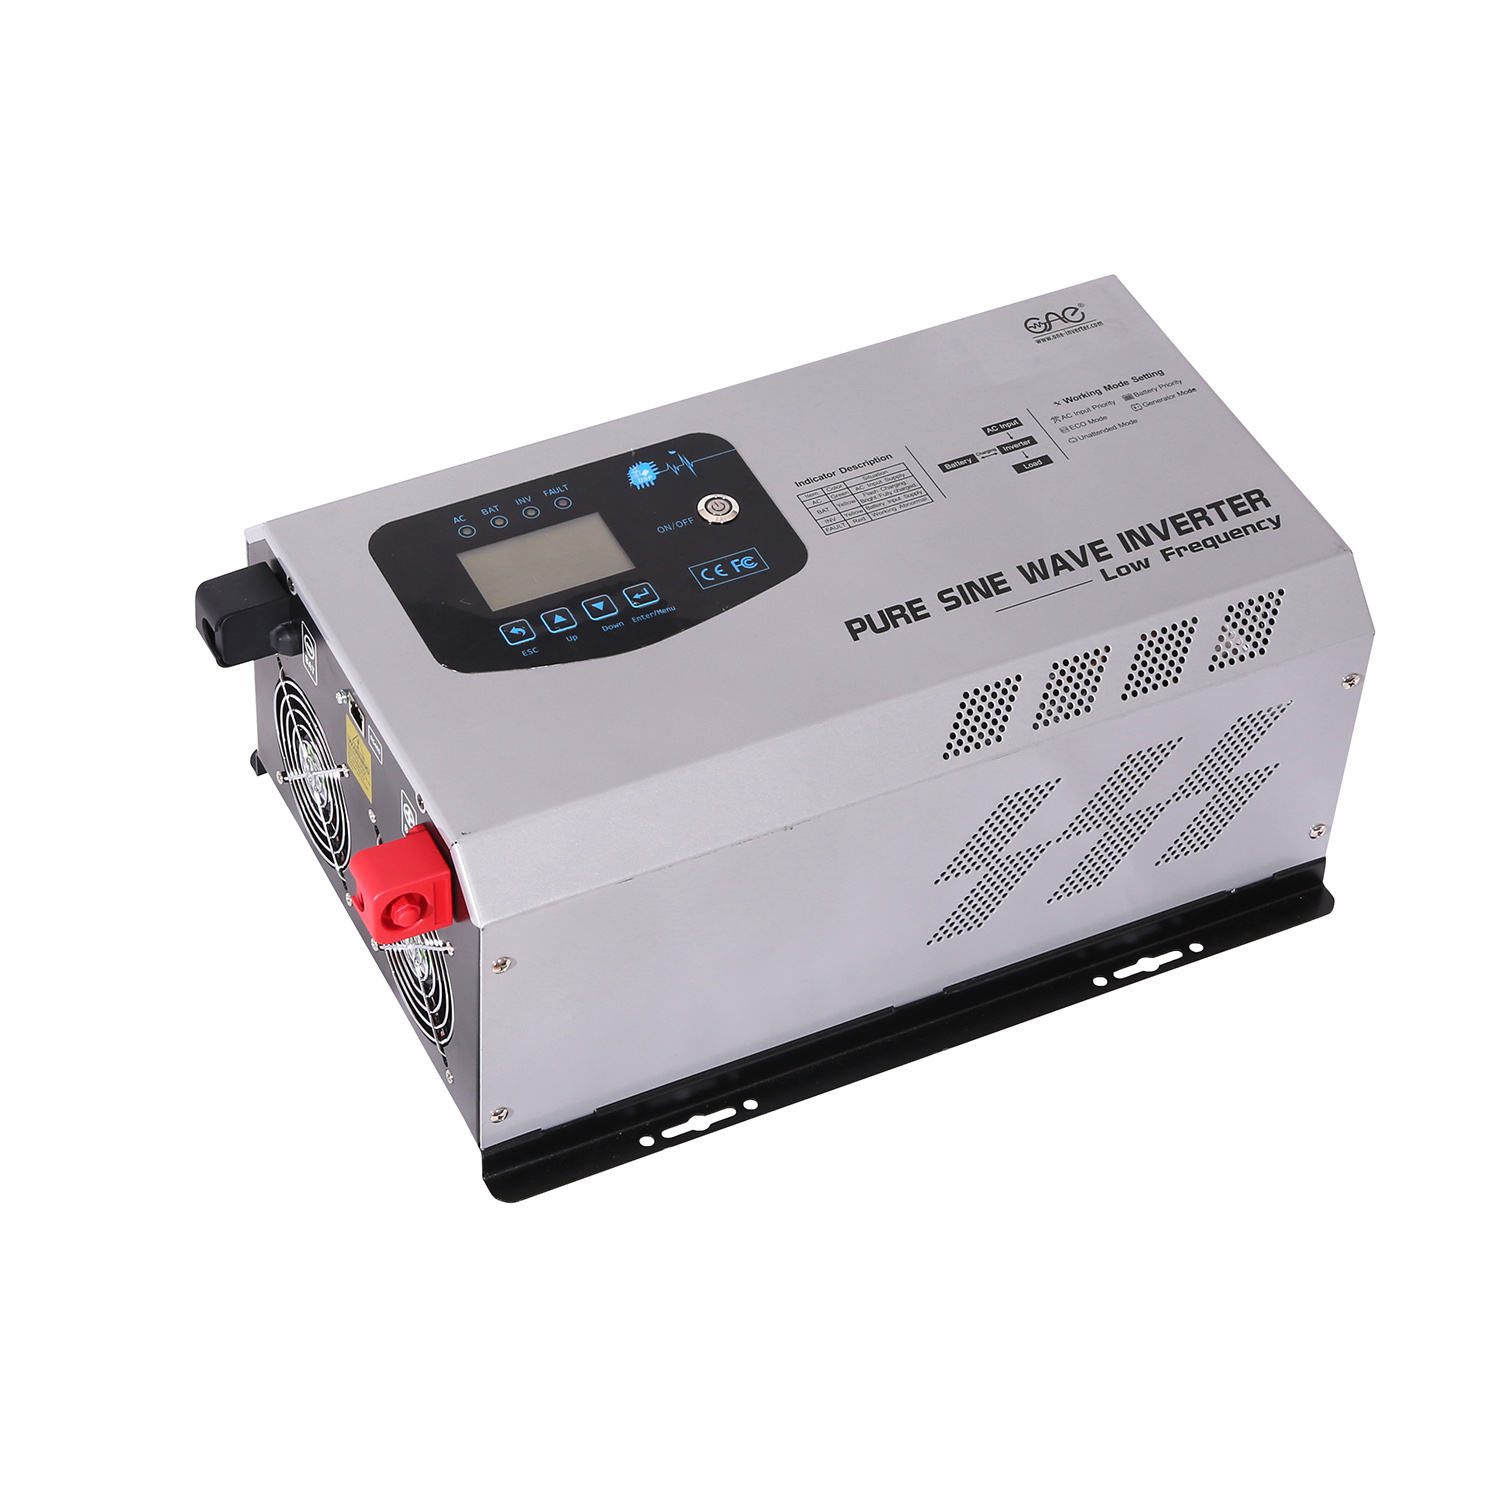 1kw 2kw 3kw 4Kw 5kw 10kw Off Grid Solar Power Inverter Dc 24V 48V to Ac 110v 220V low Frequency Inverter